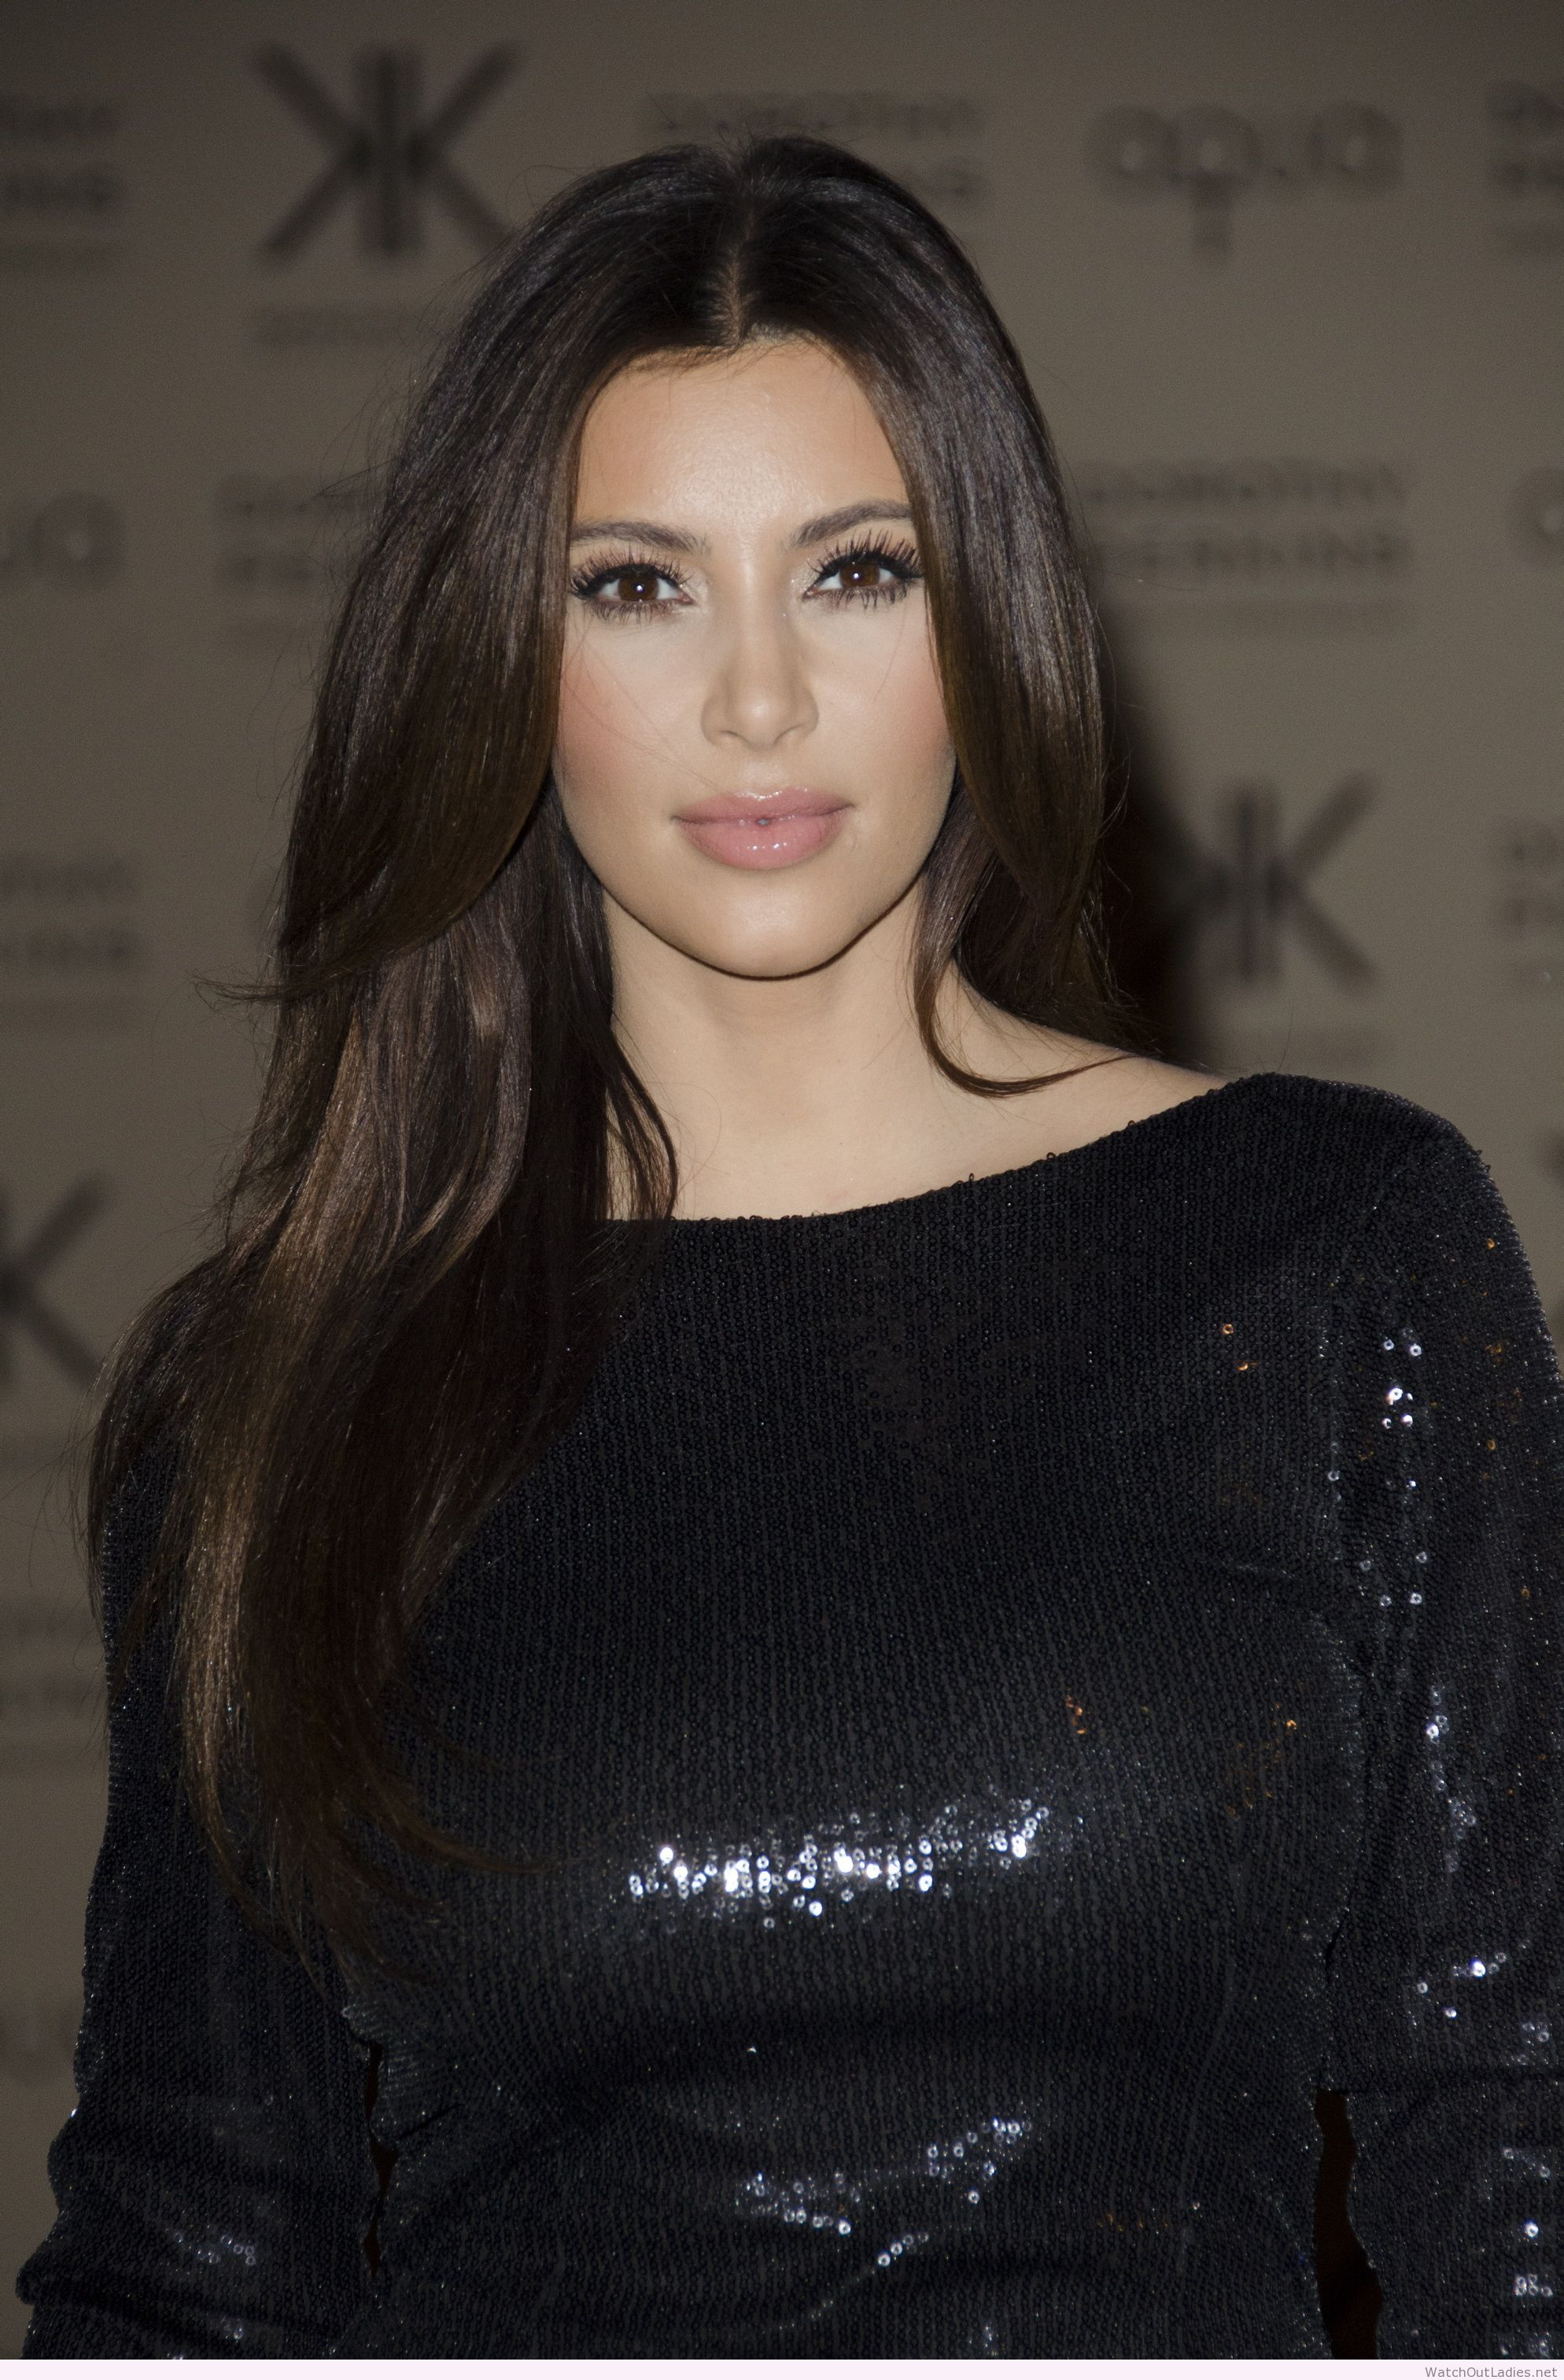 Black dress hairstyle - Kim Kardashian Glitter Black Dress Natural Makeup And Hair Look